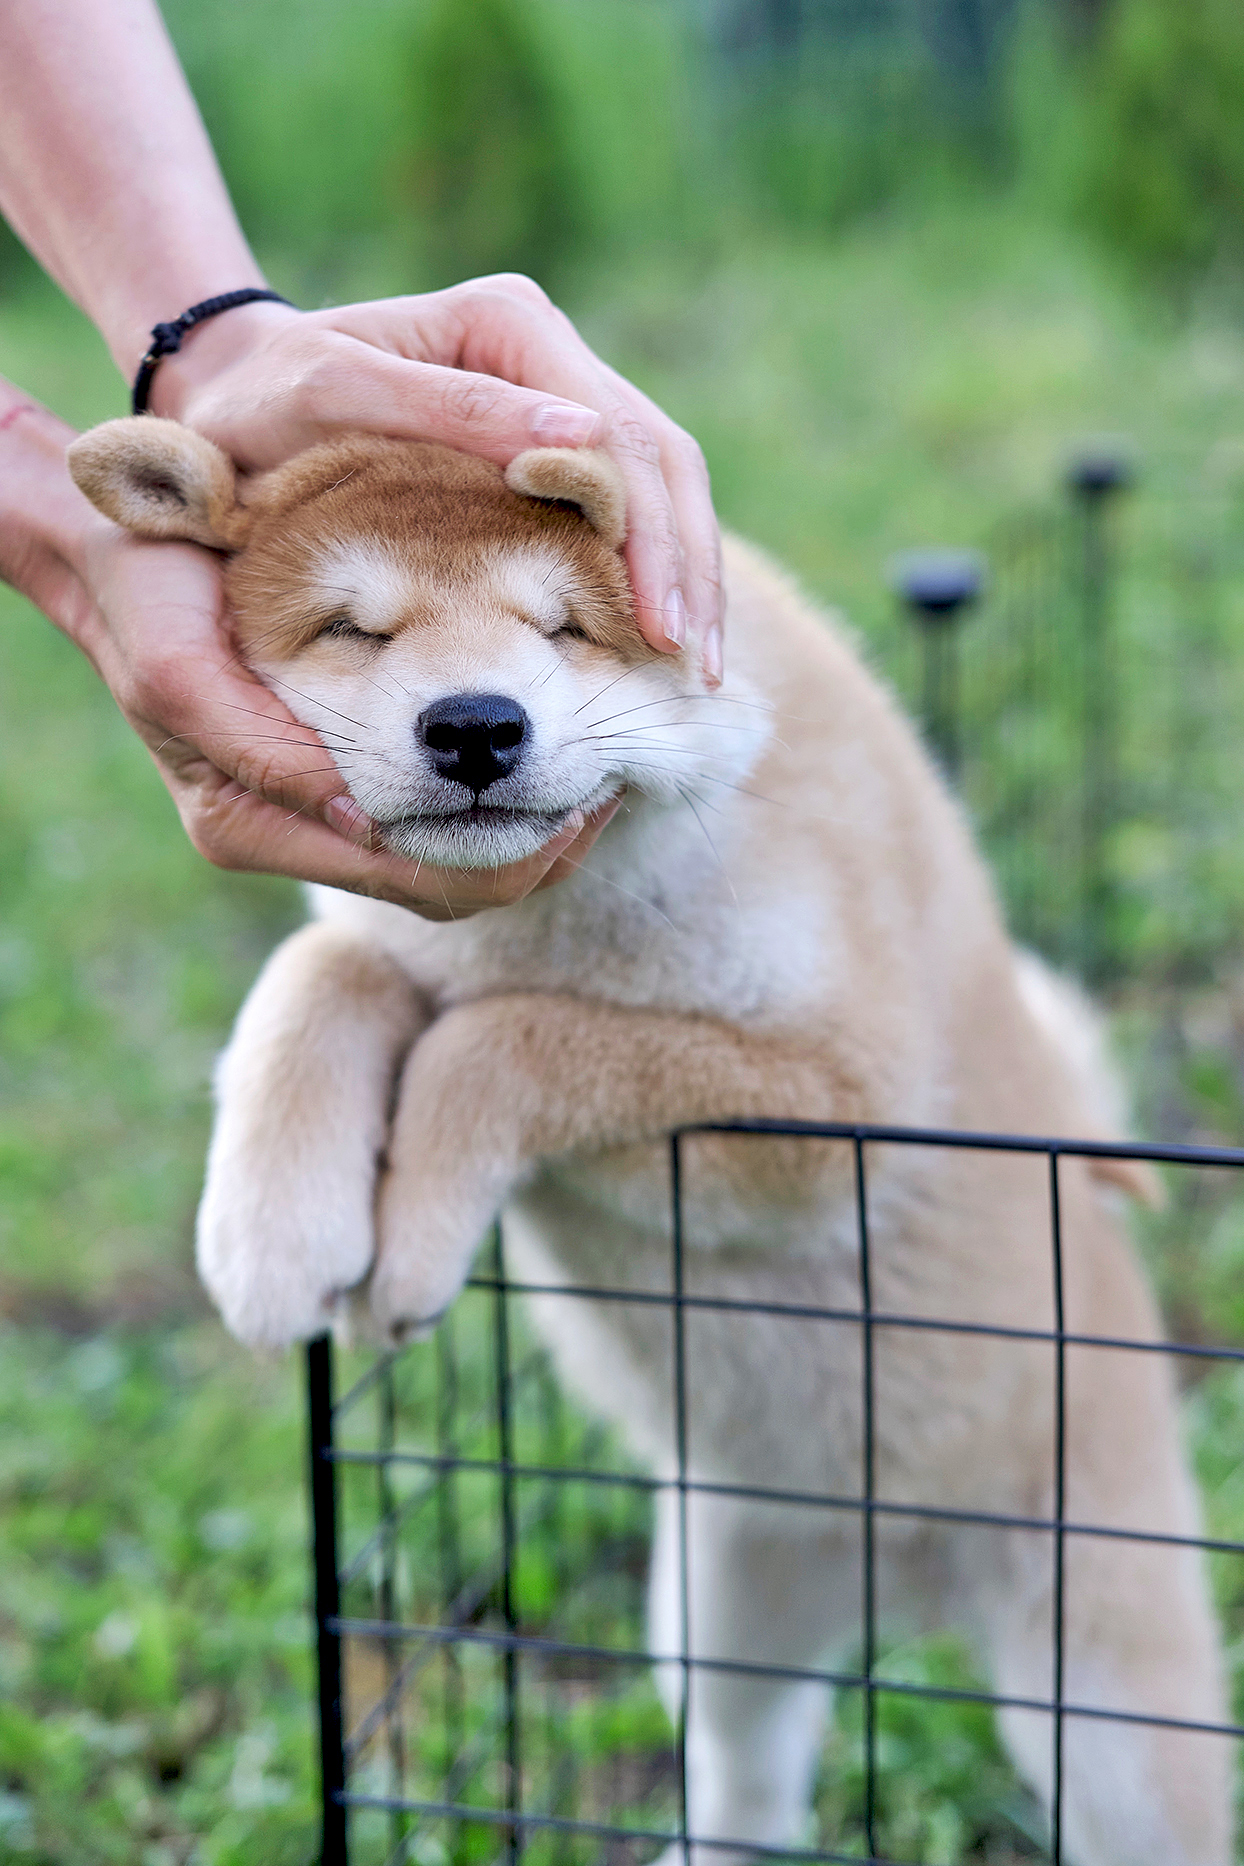 Strawberry blonde shiba inu gets petted on head by adult while in pen